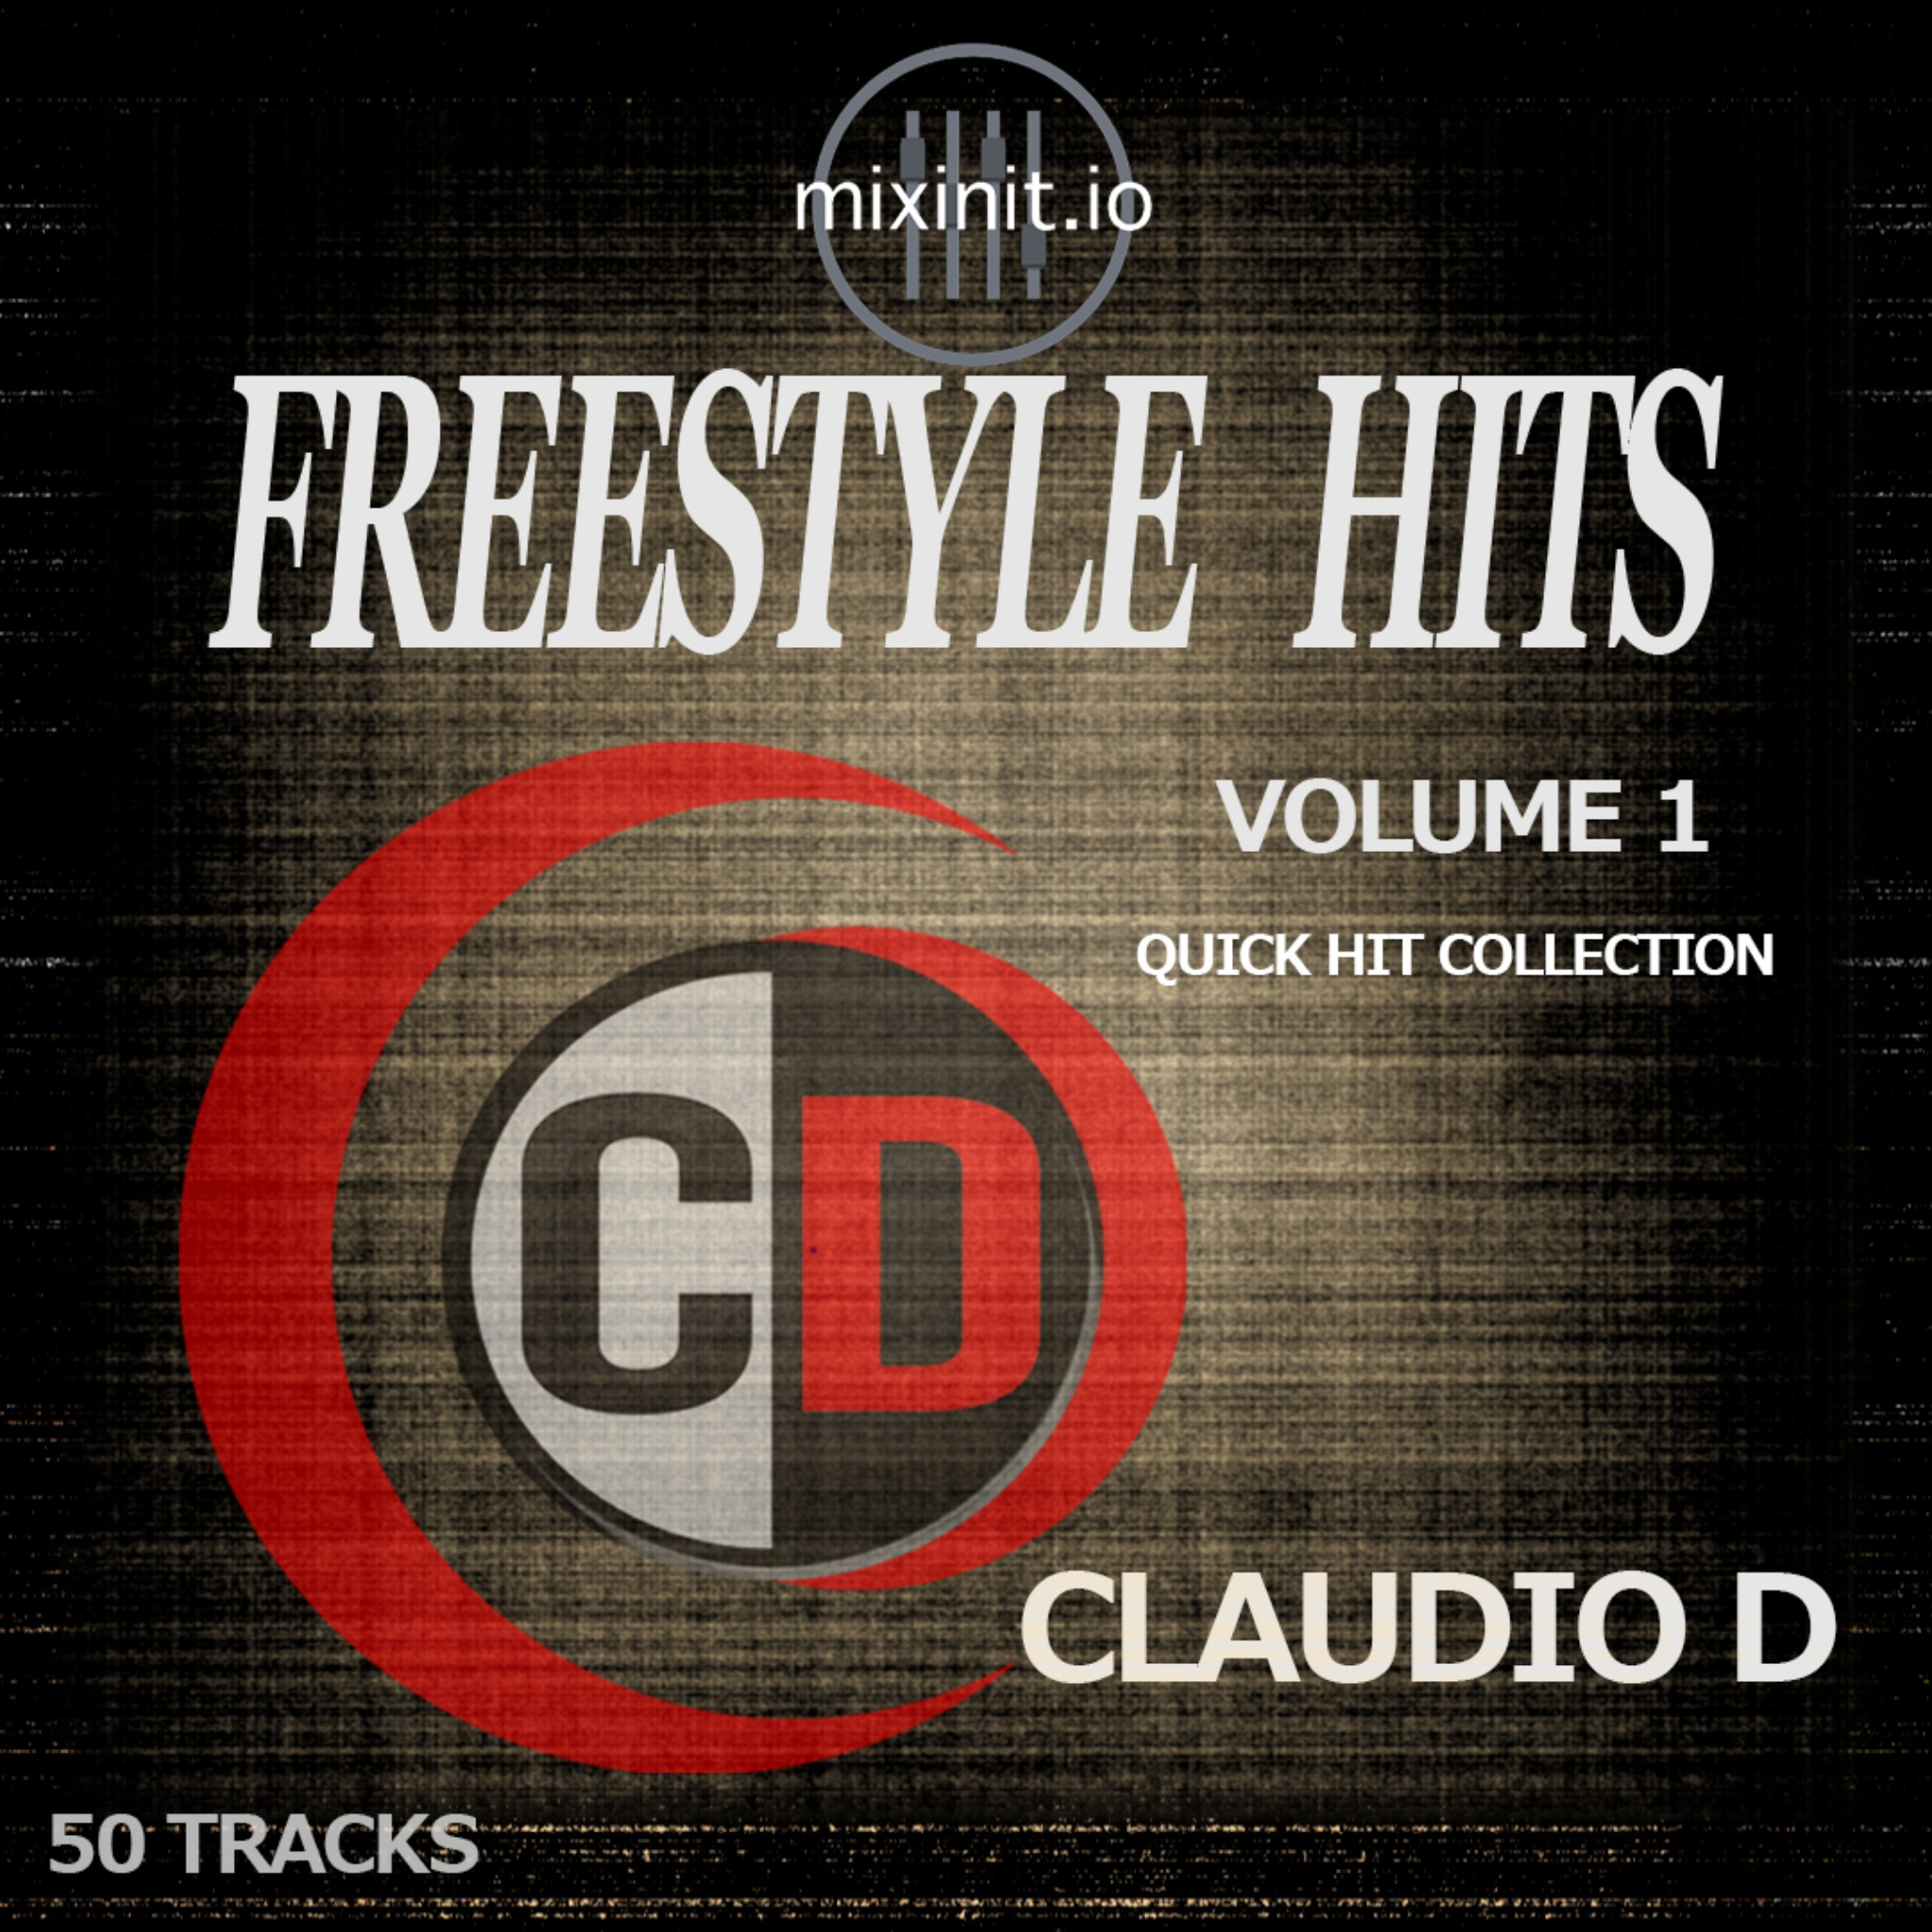 Claudio D - Freestyle Quick Hitters Vol. 1 (50 Edits)